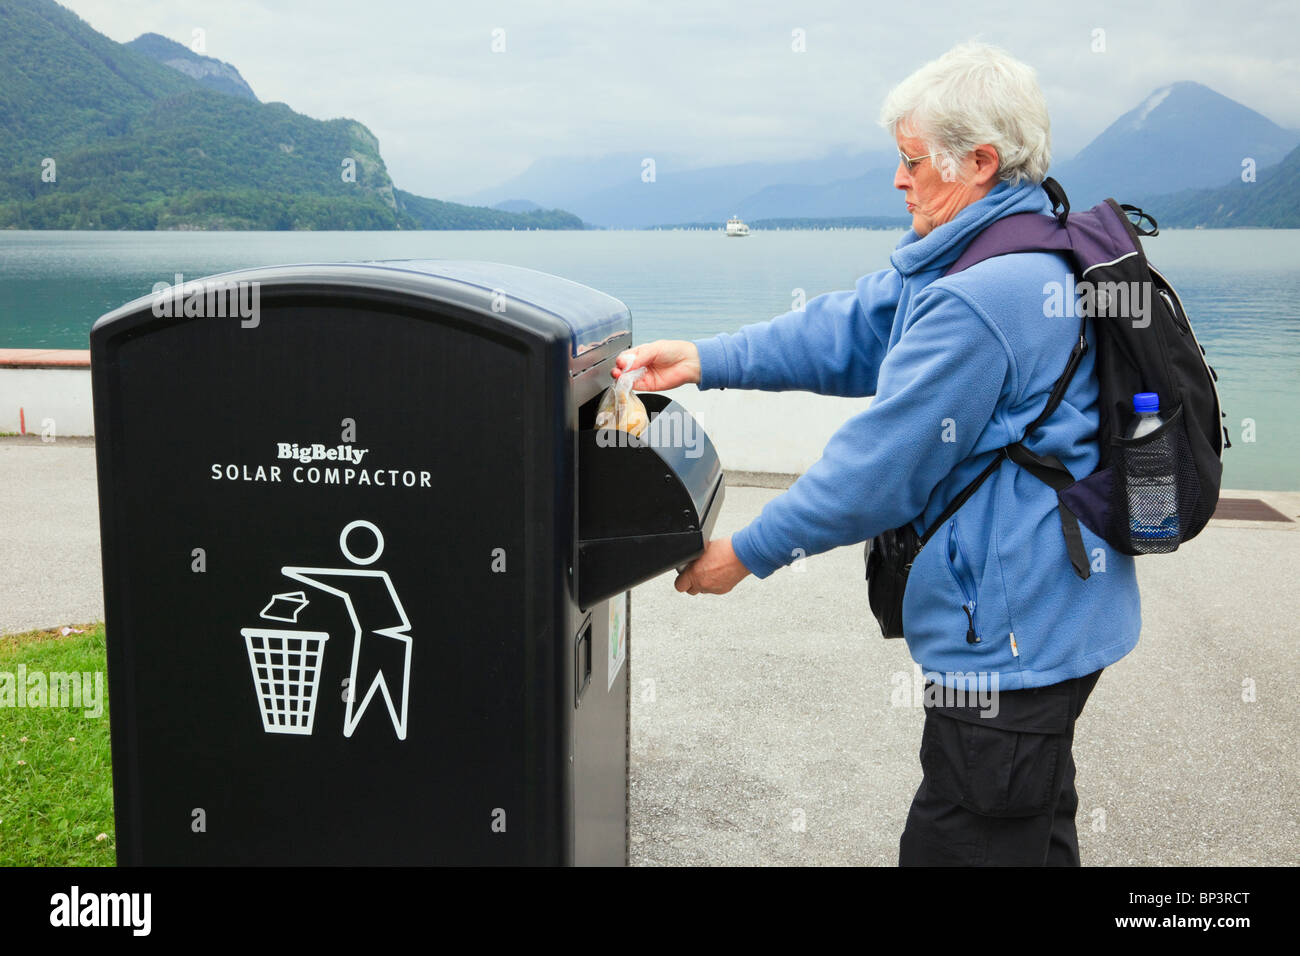 Woman throwing rubbish into a BigBelly Solar powered litter compactor bin for compressing trash - Stock Image